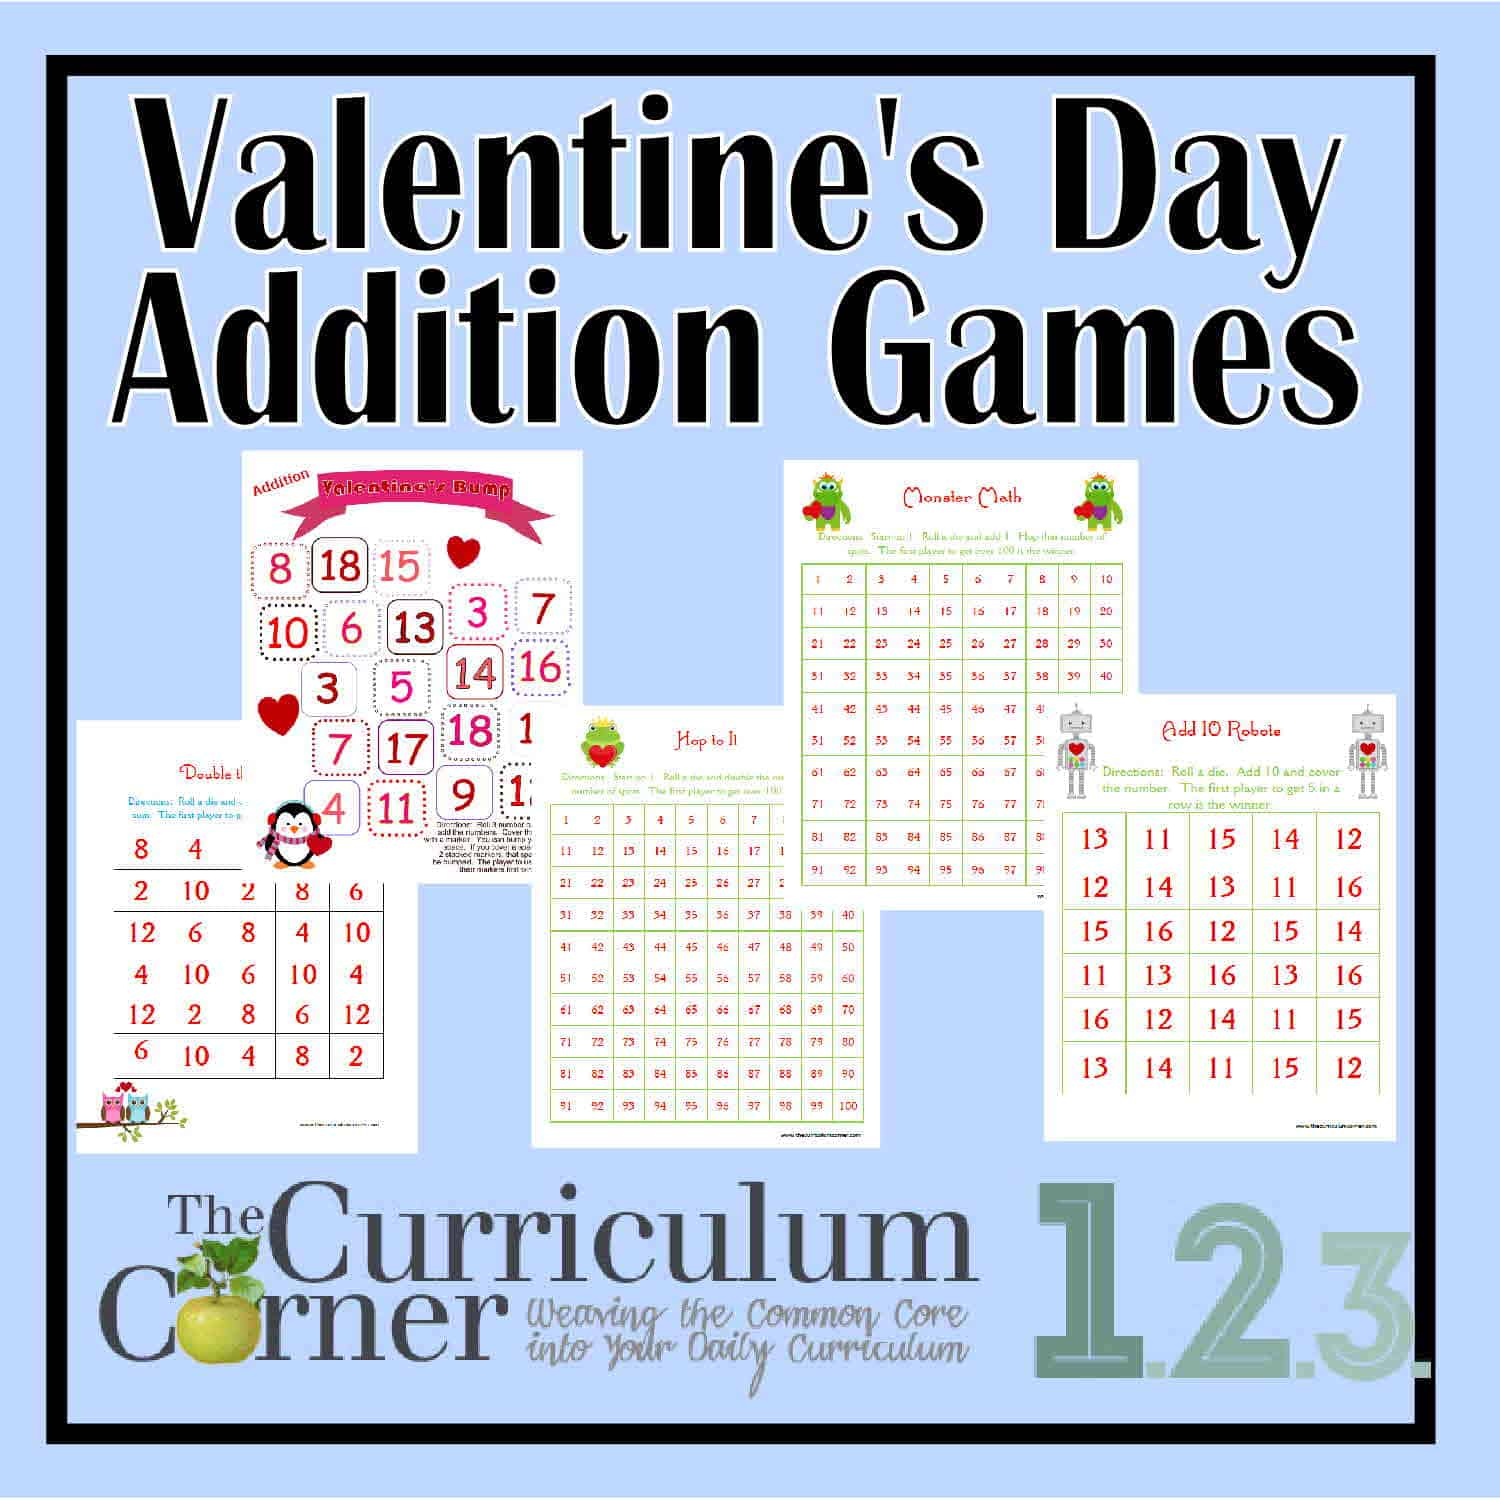 10c6e7a5d989 Valentine s Addition Math Games - The Curriculum Corner 123